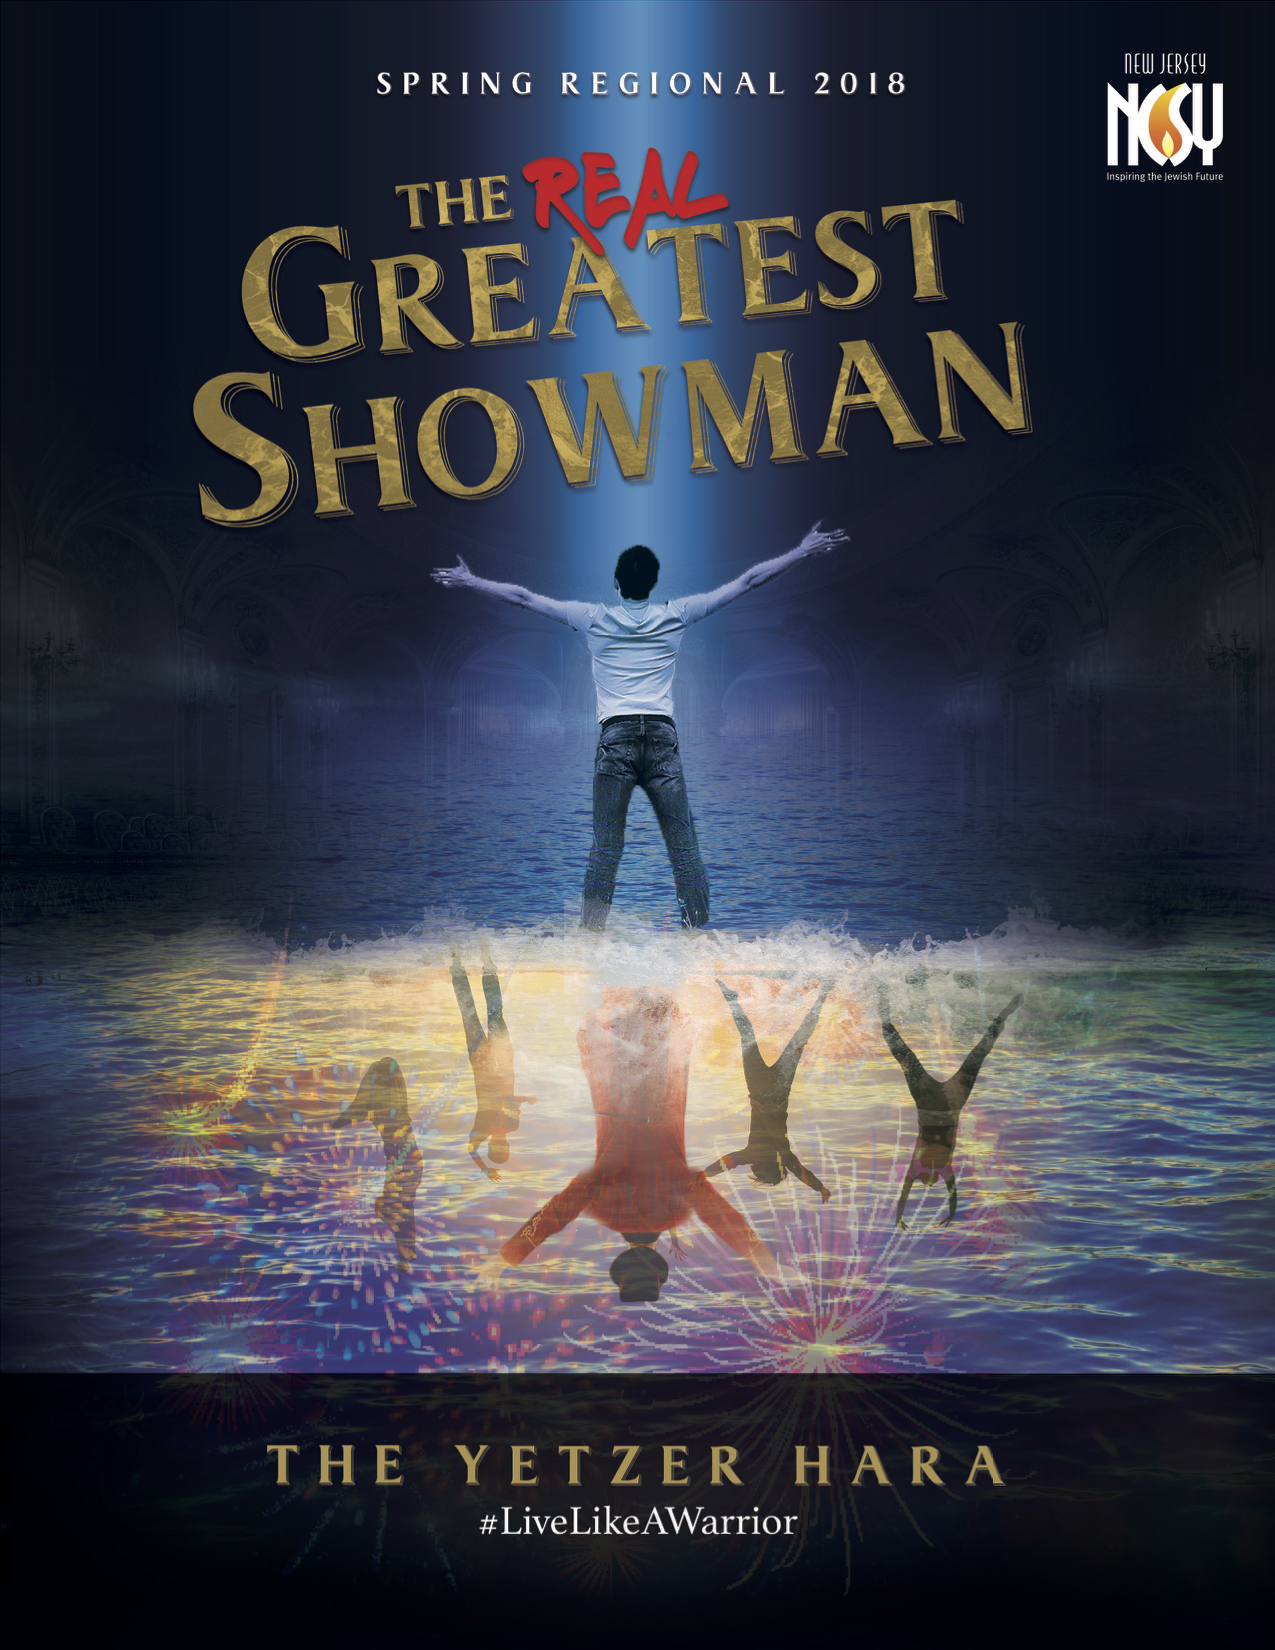 The Greatest Showman - The Yetzer Hara